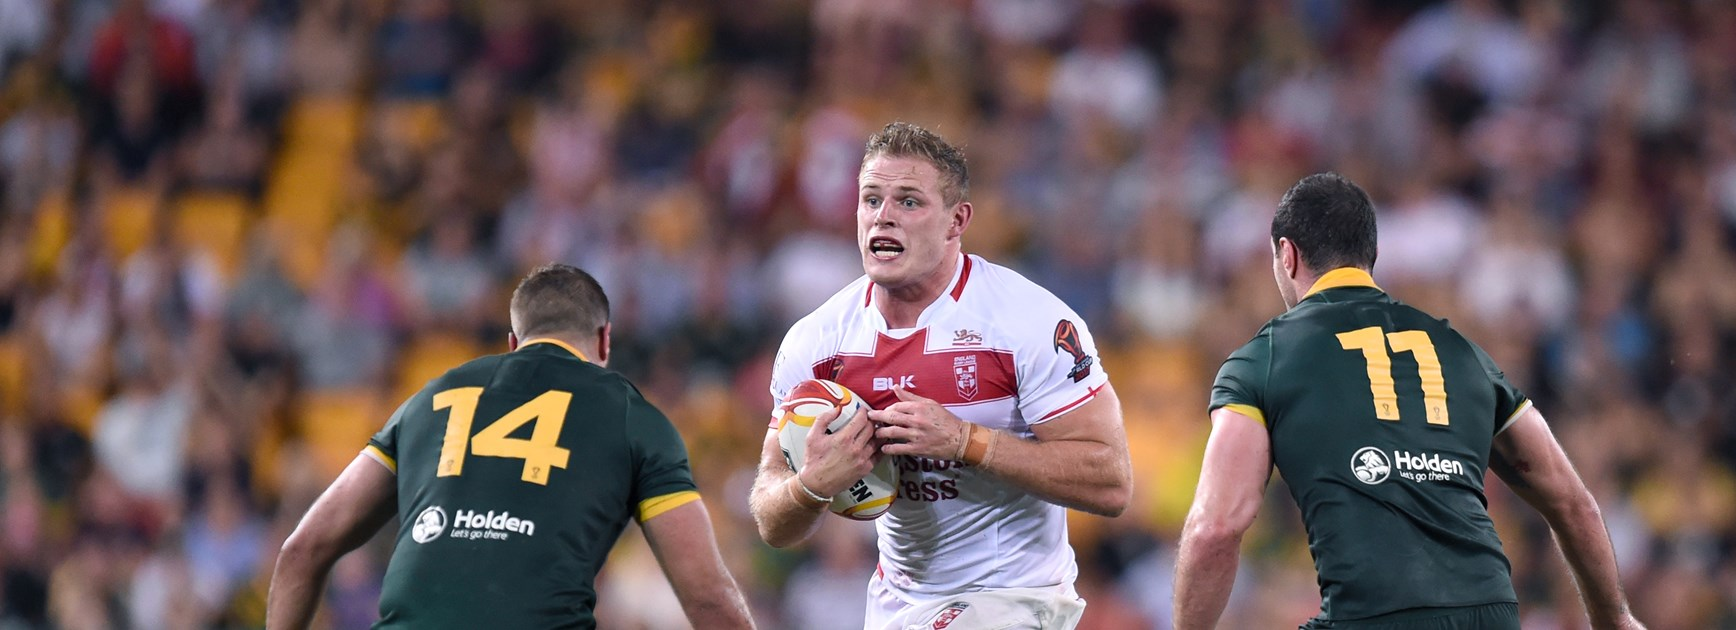 Graham to captain England World Cup Nines squad